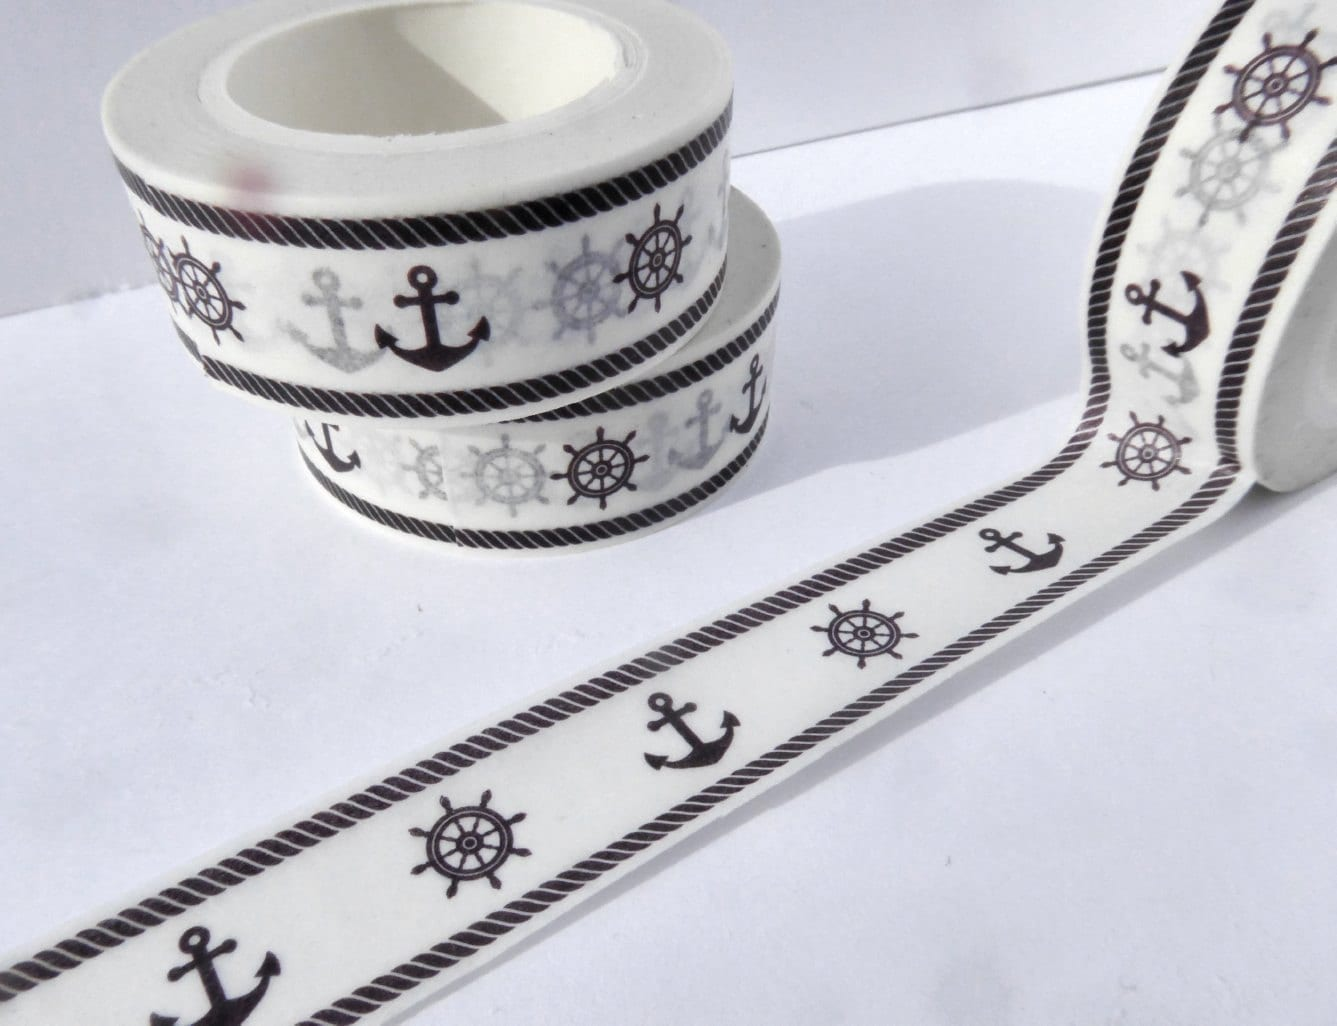 Nautical washi tape anchors and ship steering wheel paper tape nautical washi tape anchors and ship steering wheel paper tape great for scrapbooking paper crafts and decorations boat theme 15mm x 10m jeuxipadfo Images